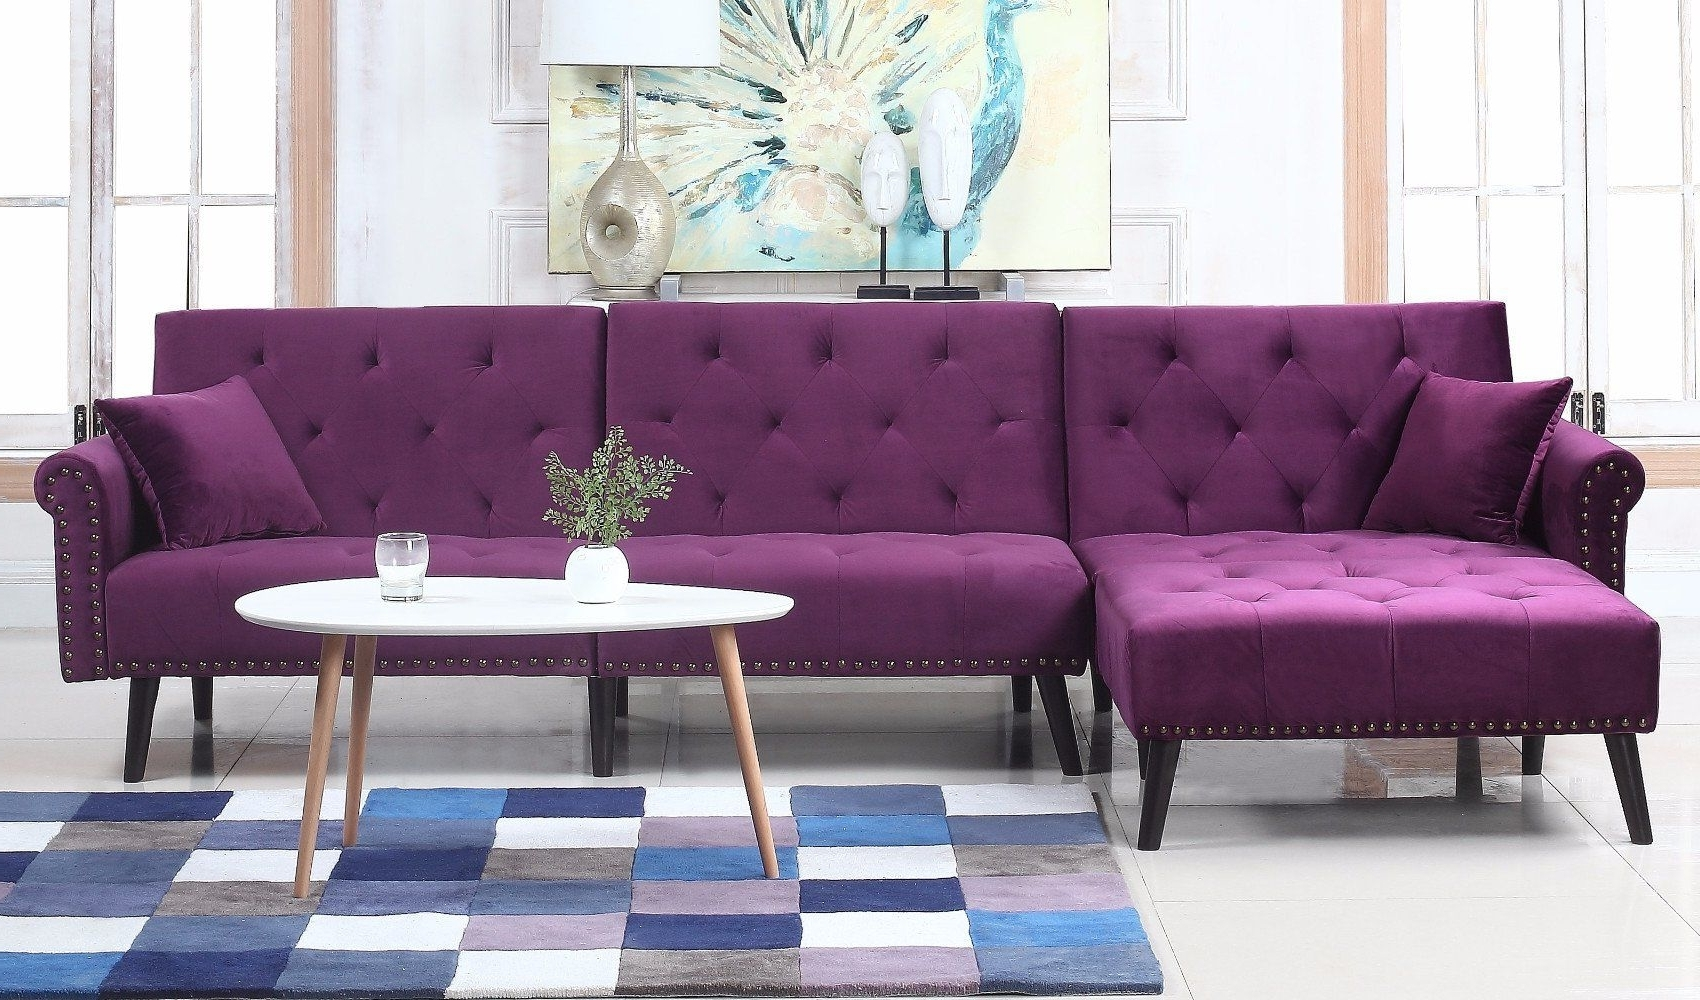 Velvet Sectional Sofas With Chaise With Widely Used Victoria Velvet Sectional Futon With Chaise In Purple (View 14 of 15)